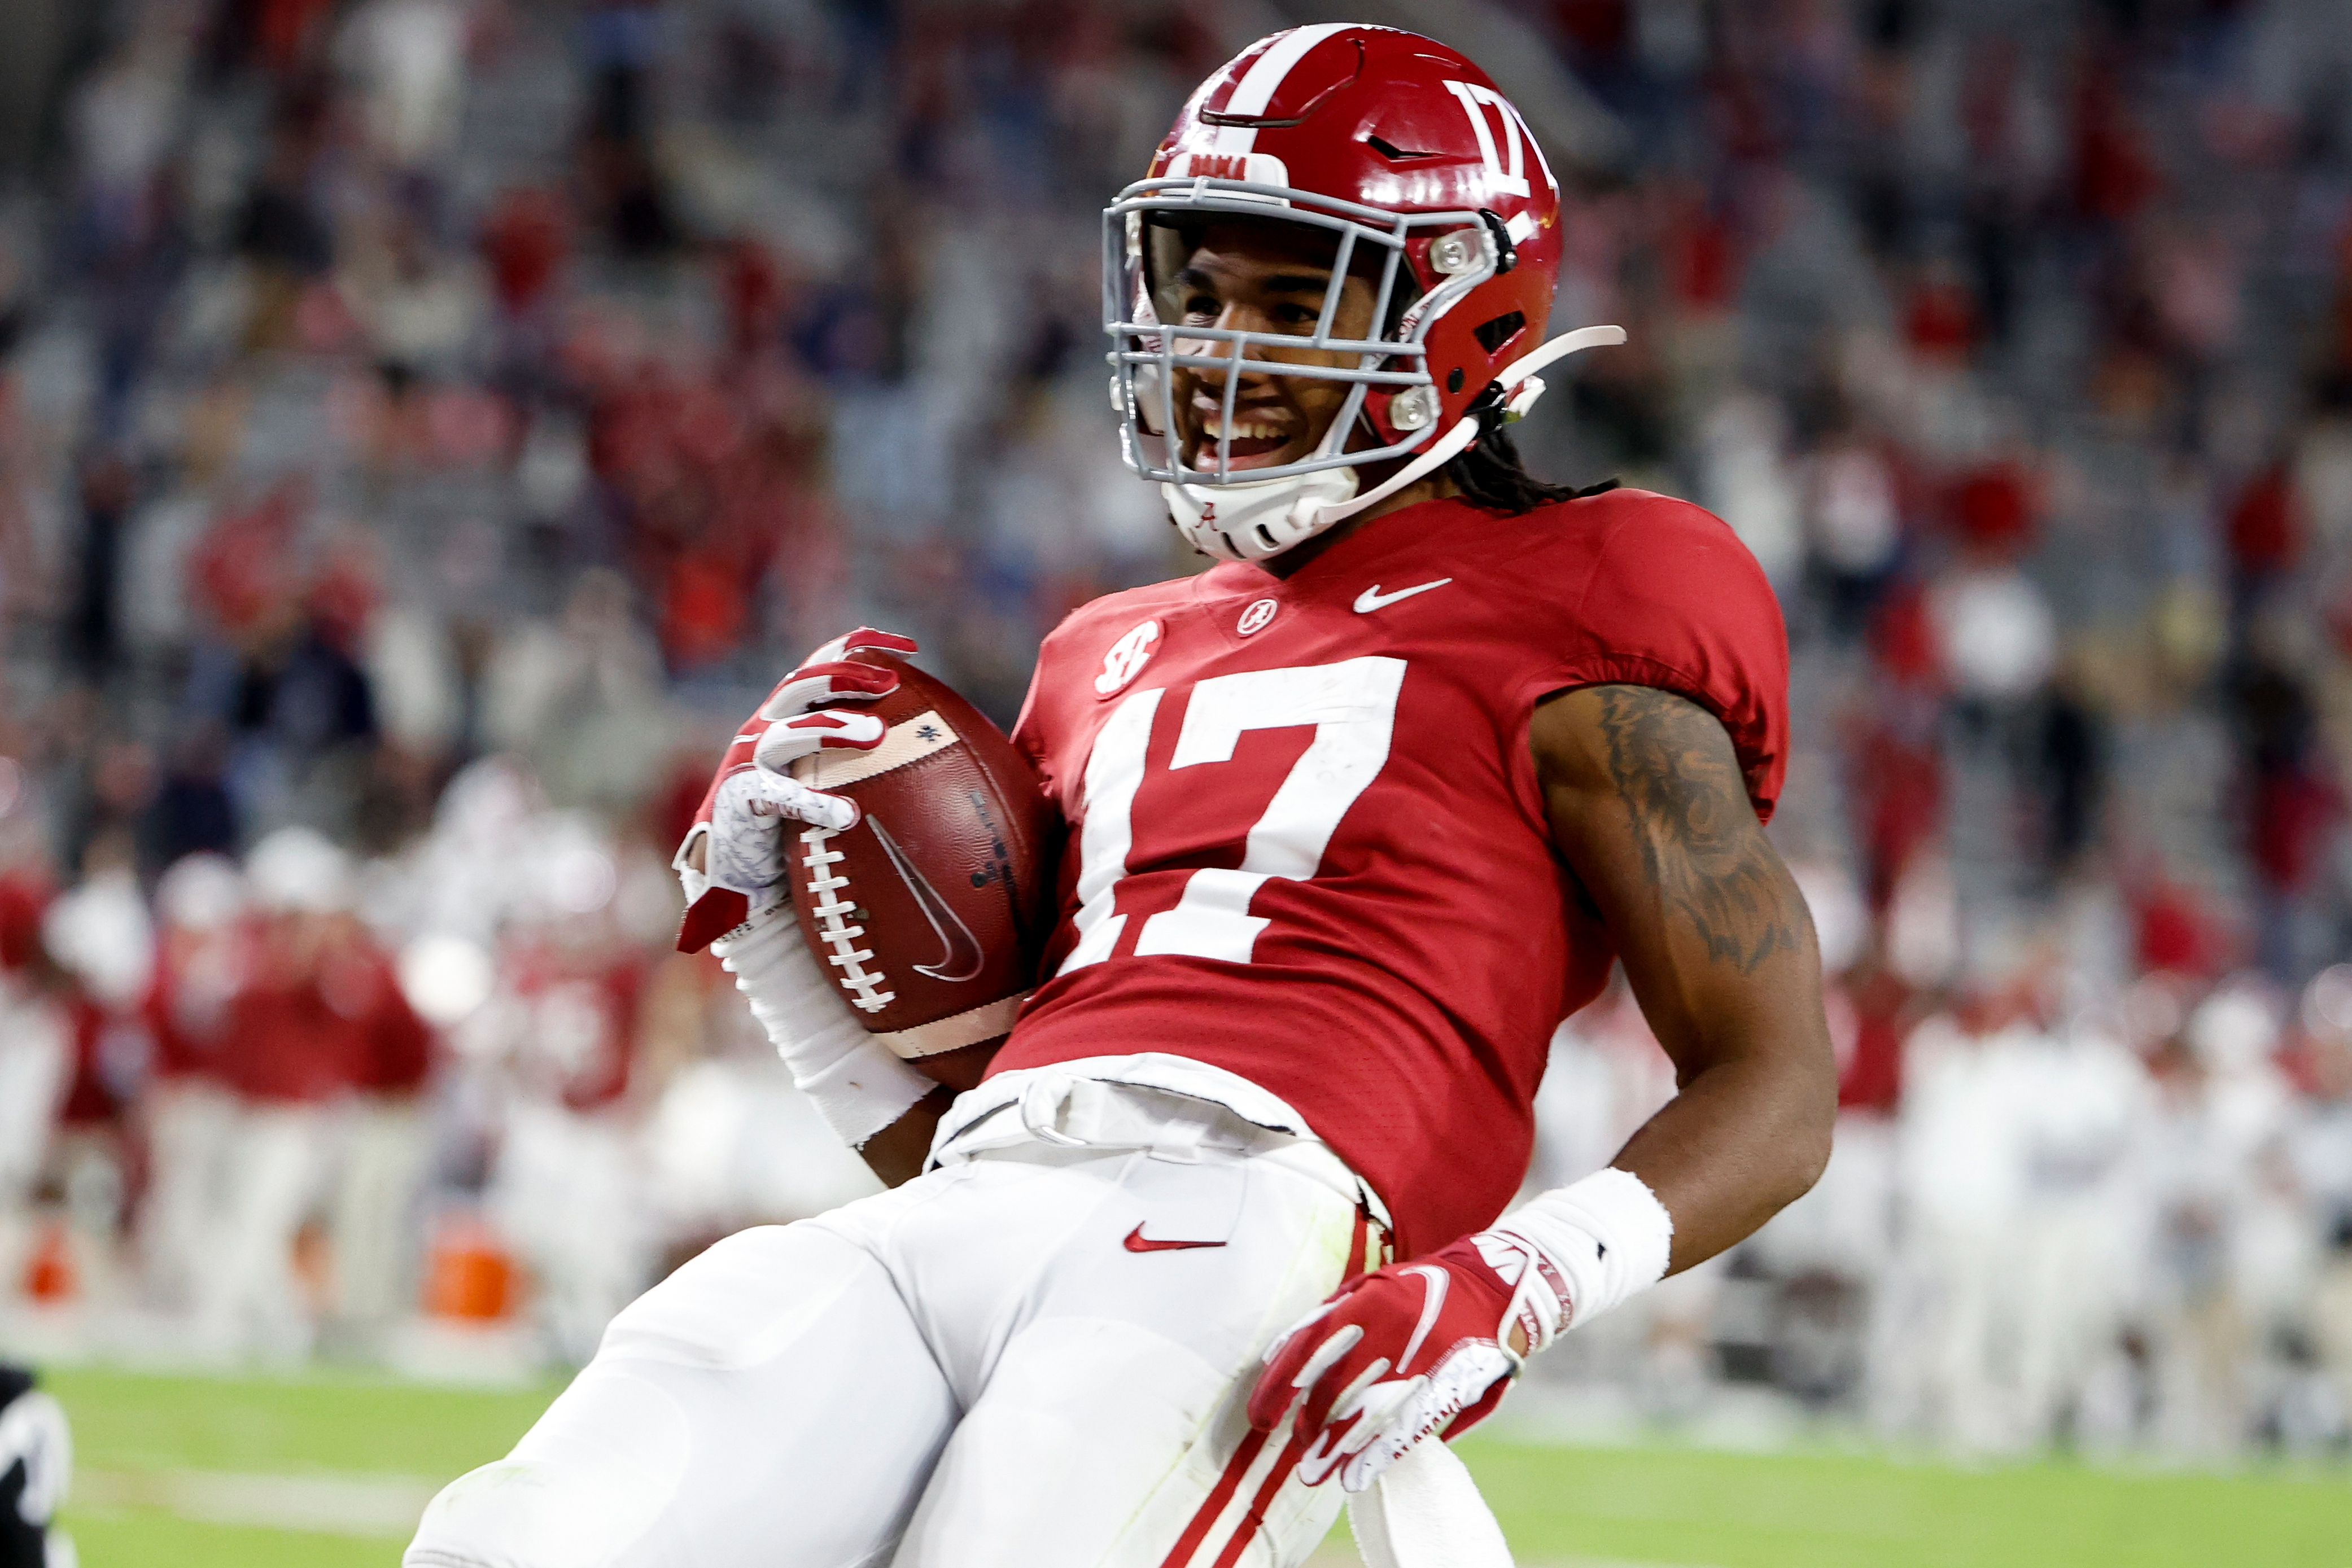 Jaylen Waddle of the Alabama Crimson Tide celebrates running in a touchdown in the seond half against the Georgia Bulldogs at Bryant-Denny Stadium on October 17, 2020 in Tuscaloosa, Alabama.